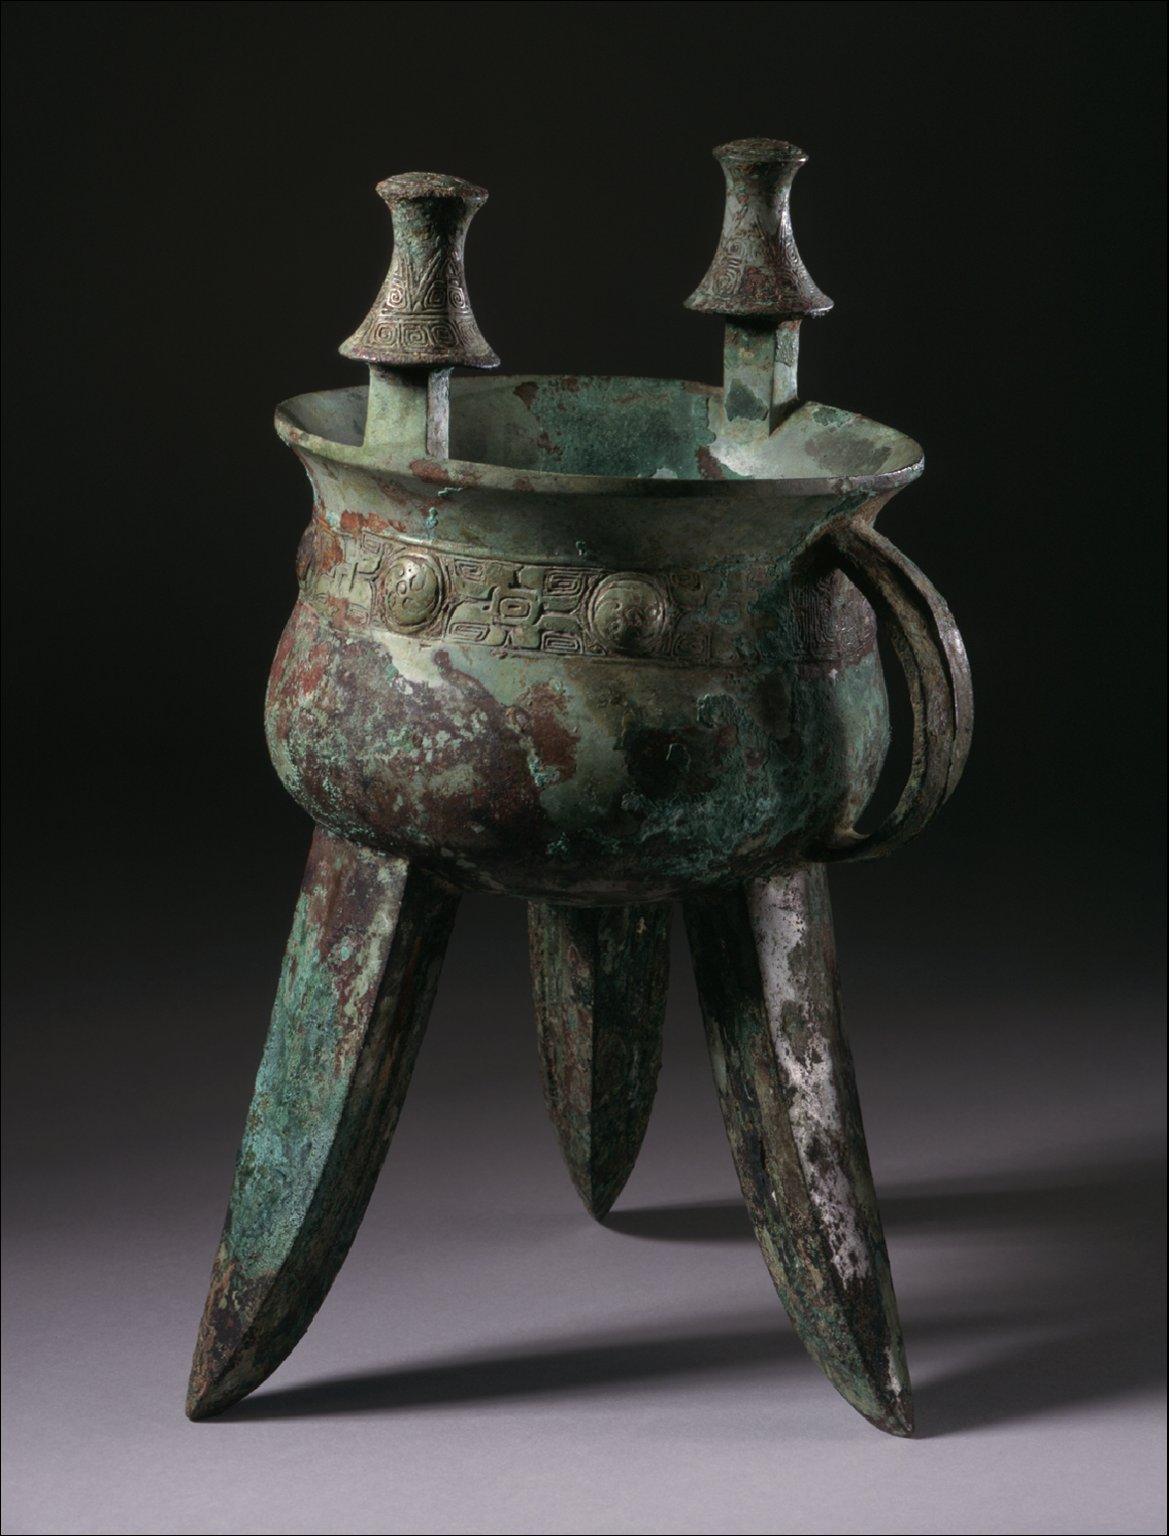 Large Ritual Wine Warmer (Jia) with Whorls and Spirals